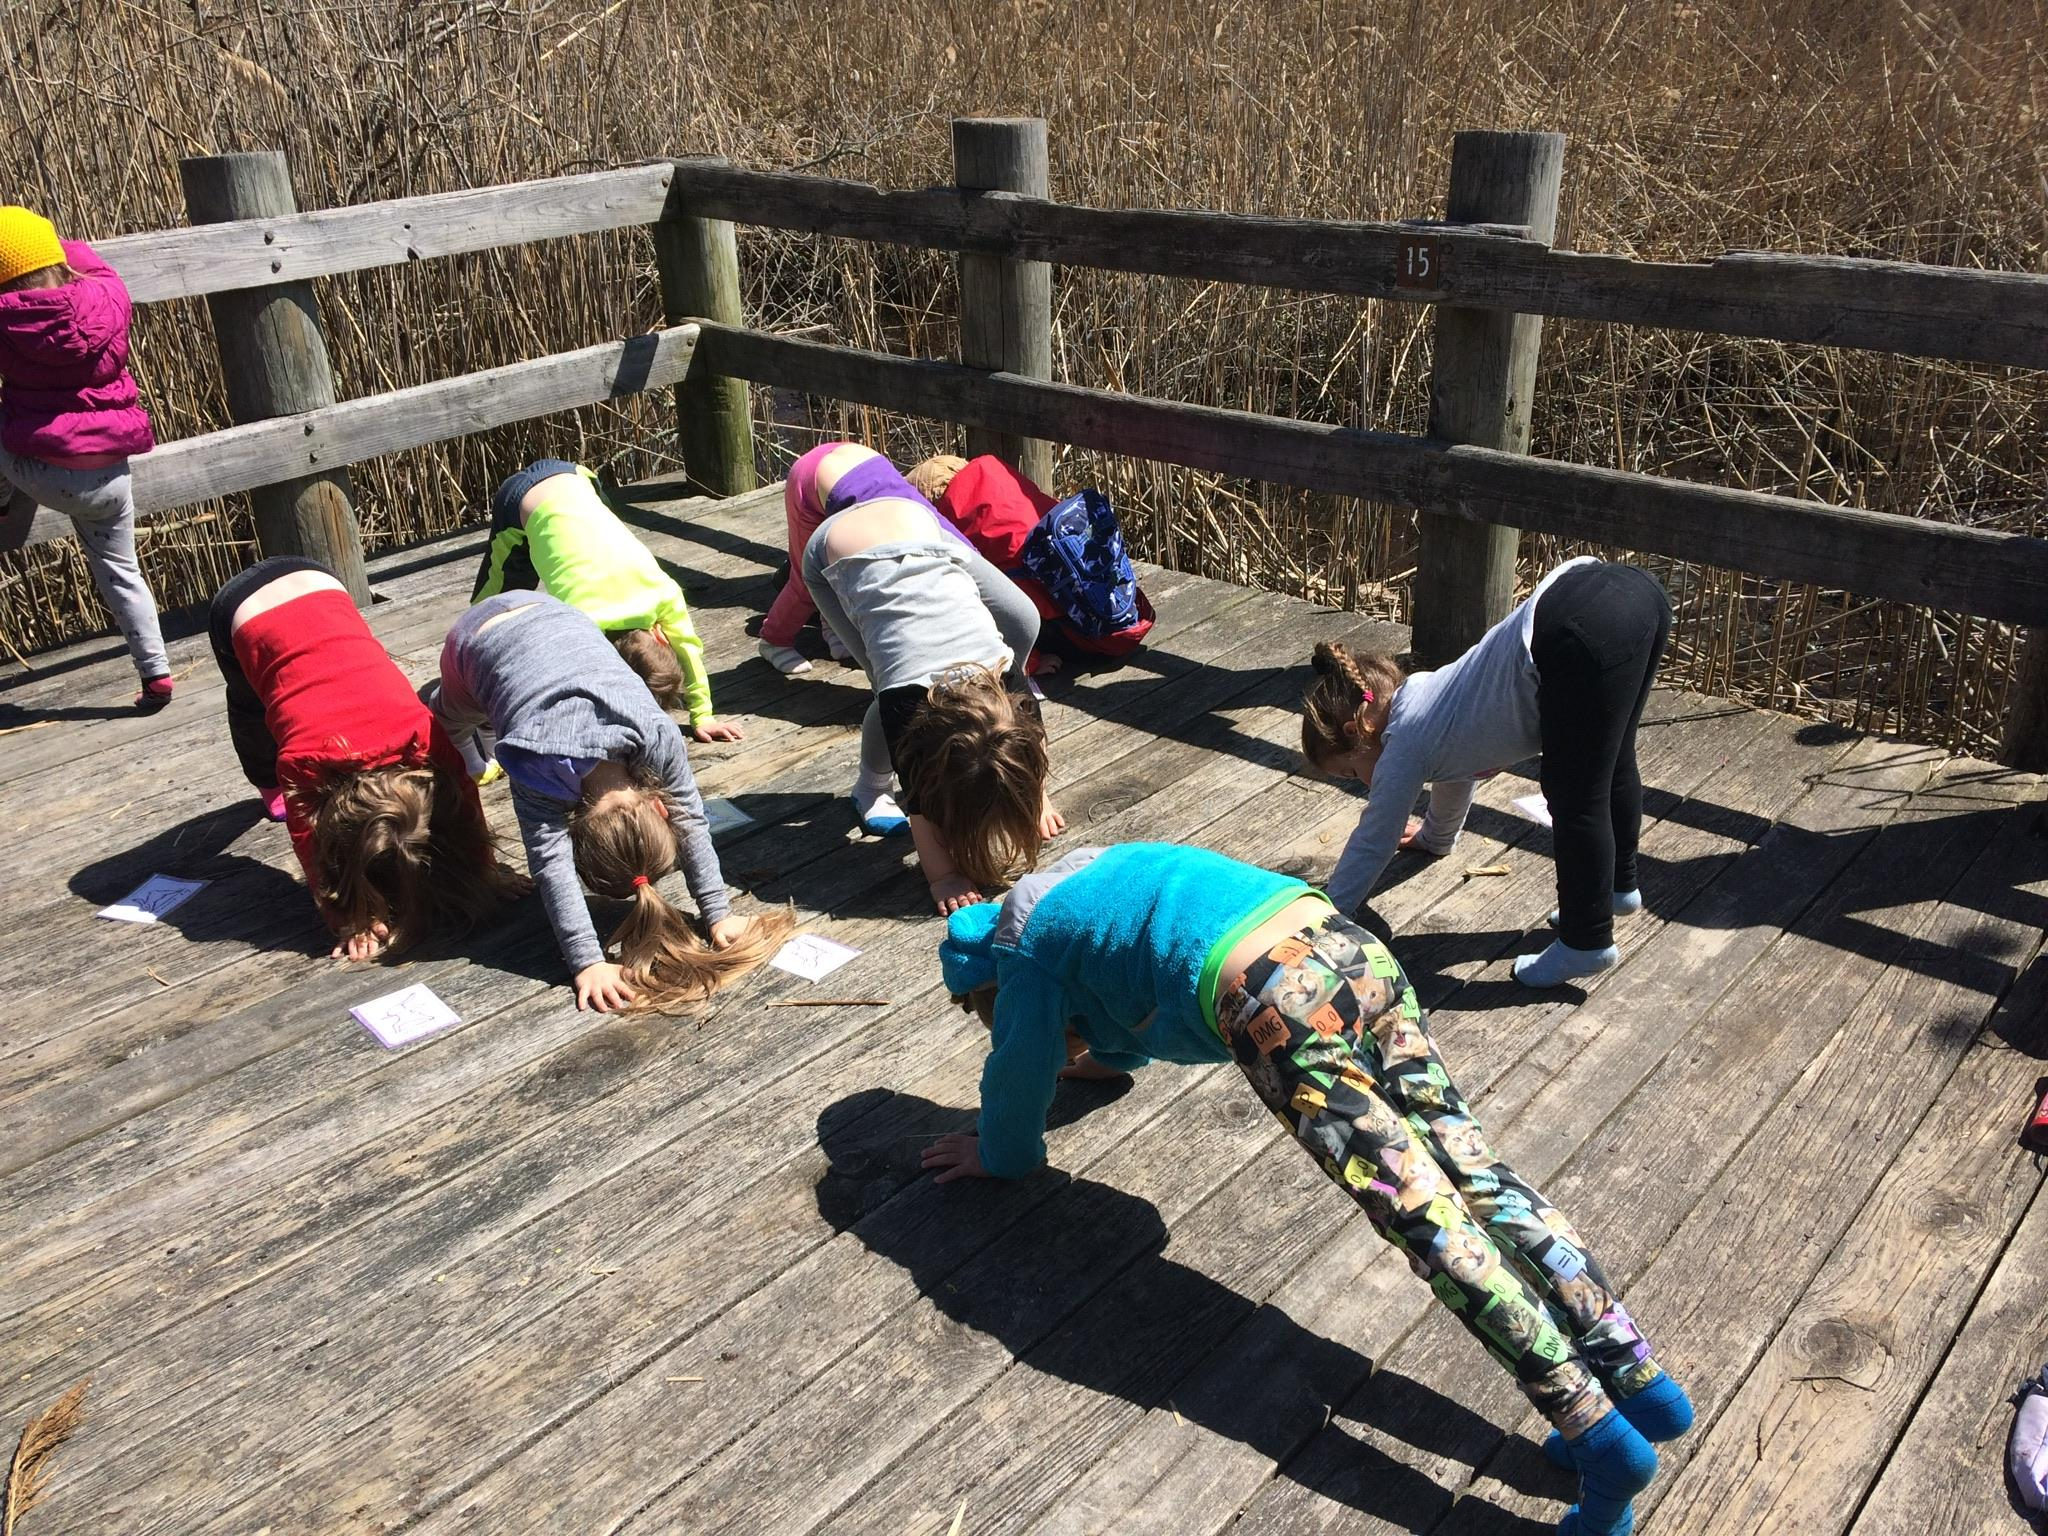 Little Peepers Forest School teaches preschoolers about the environment